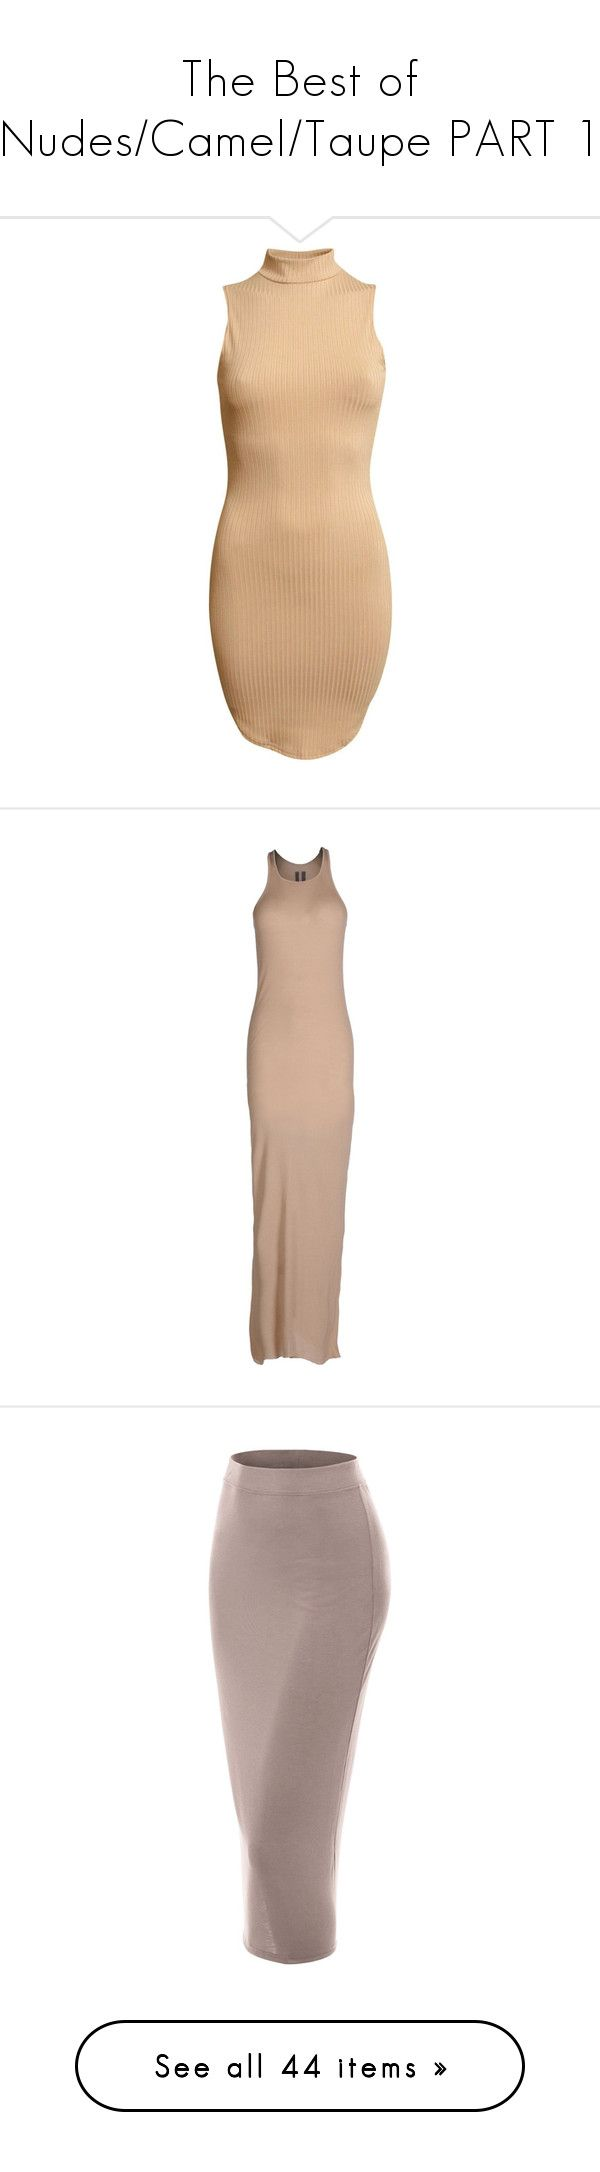 """The Best of Nudes/Camel/Taupe PART 1"" by hayleigha ❤ liked on Polyvore featuring nude, taupe, camel, dresses, high neck sleeveless dress, brown sleeveless dress, bodycon cocktail dress, bodycon dress, camel dress and sand"